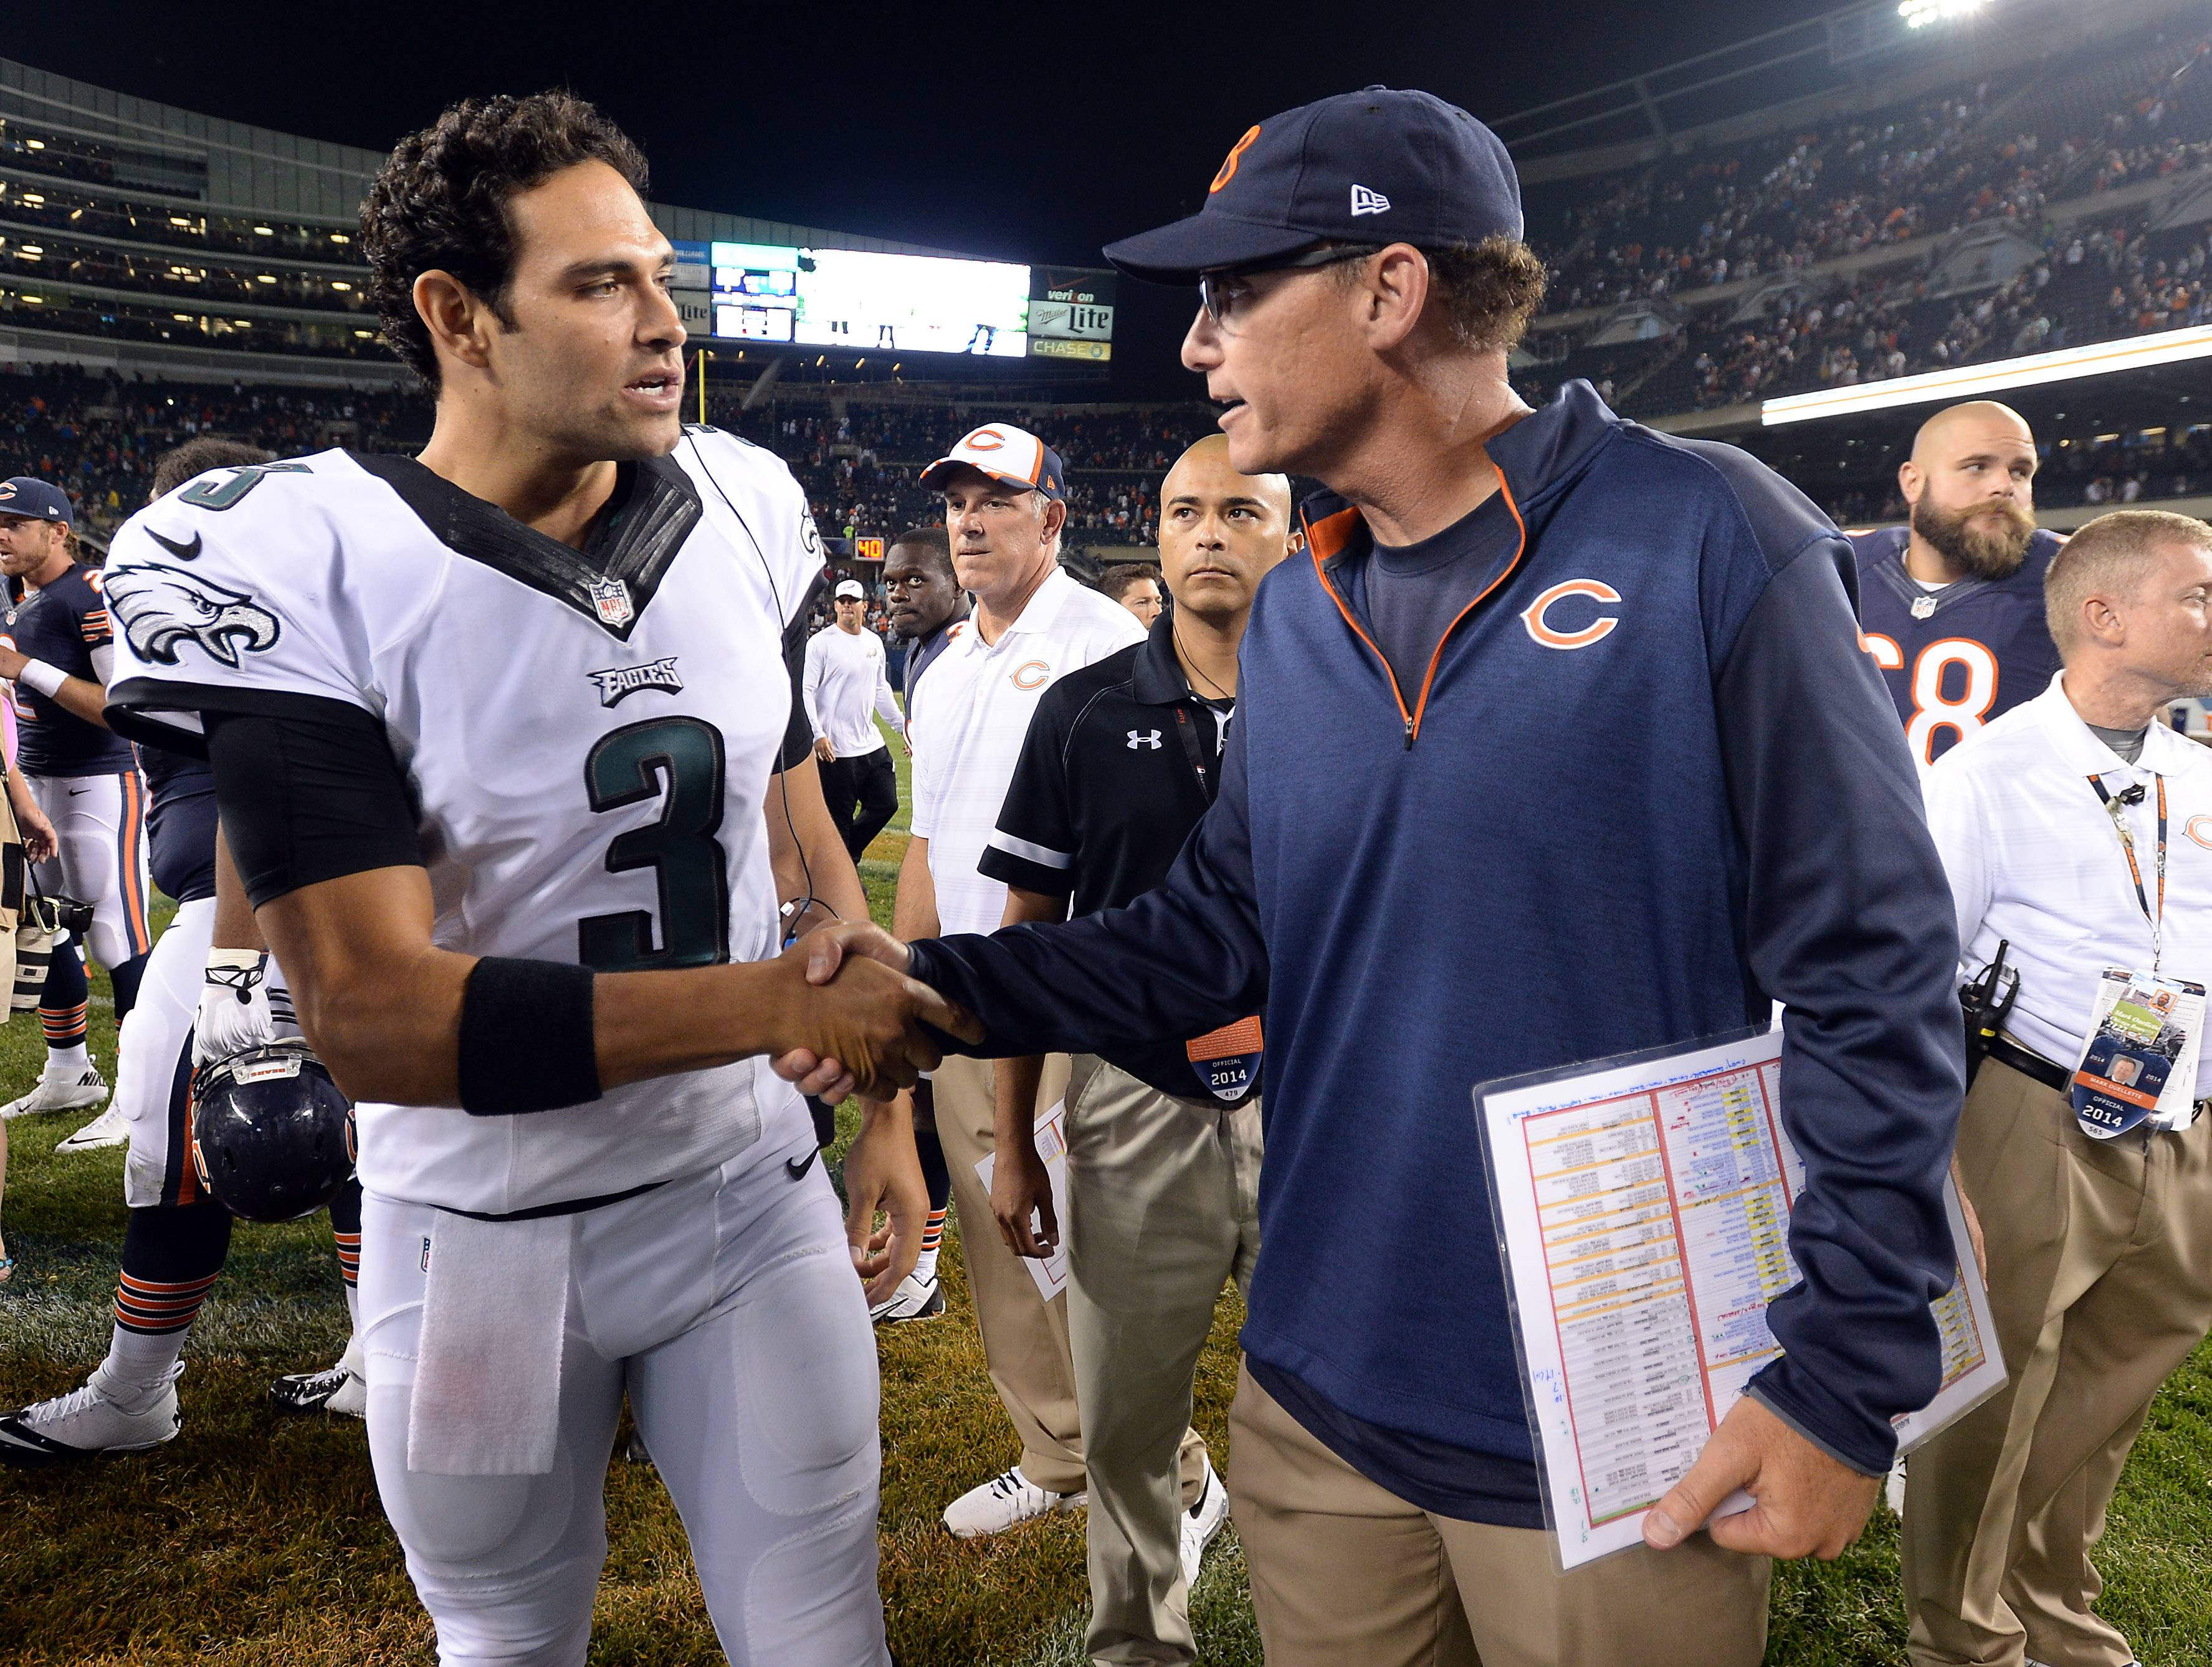 Bears coach Marc Trestman and Philadelphia's quarterback Mark Sanchez come together at the end of the game.